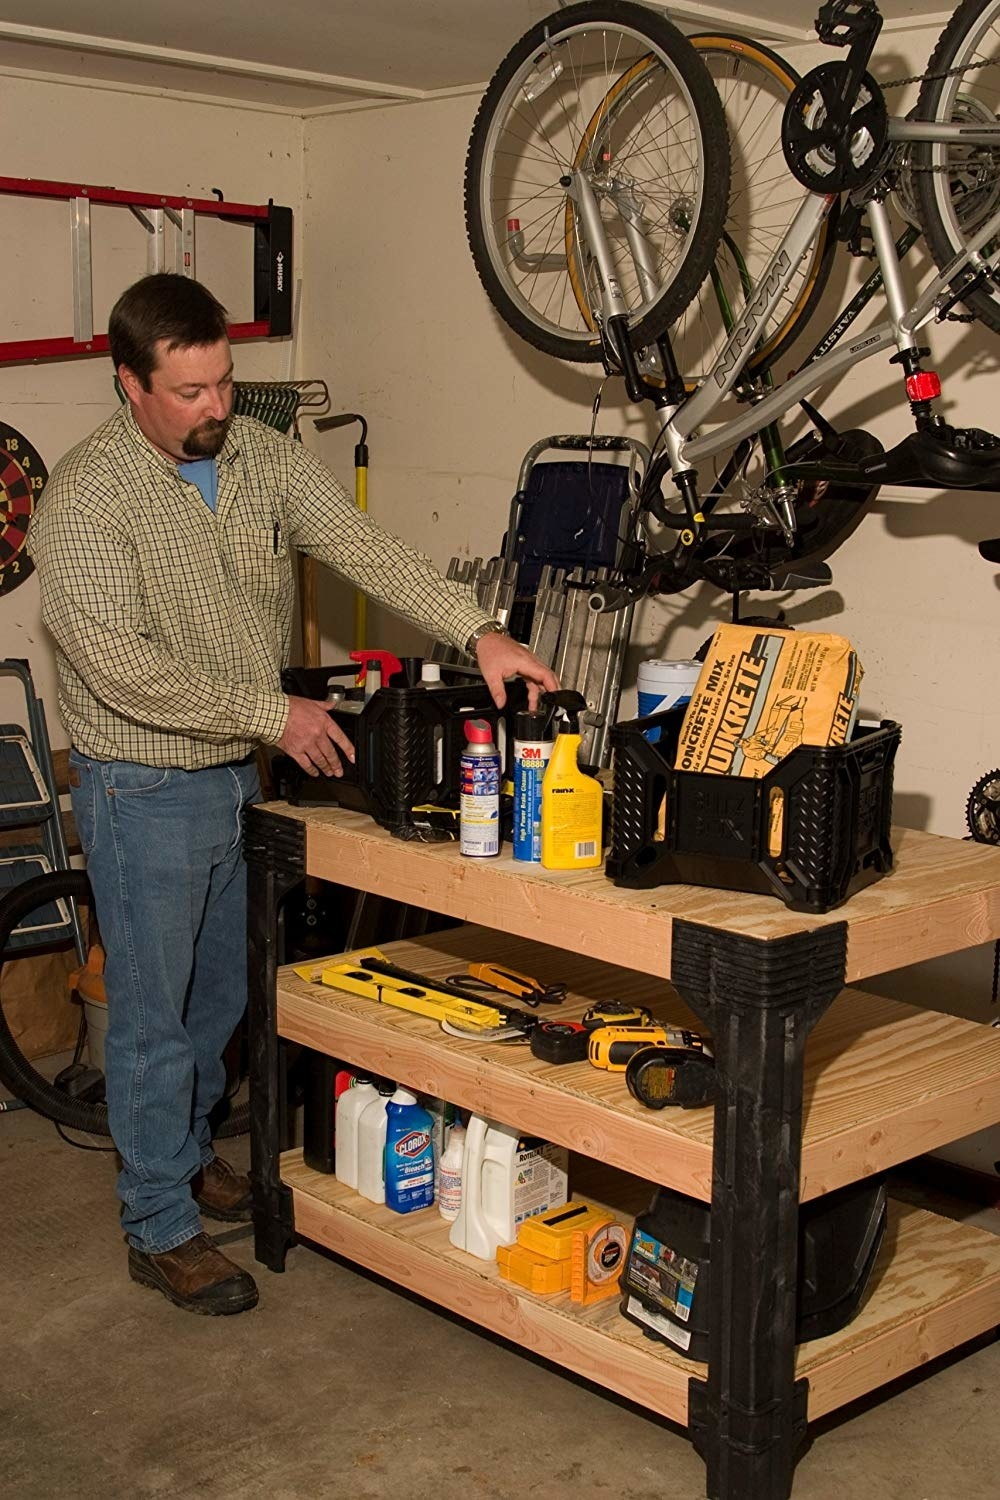 a model organizing his tools on the three tiers of the wooden workbench